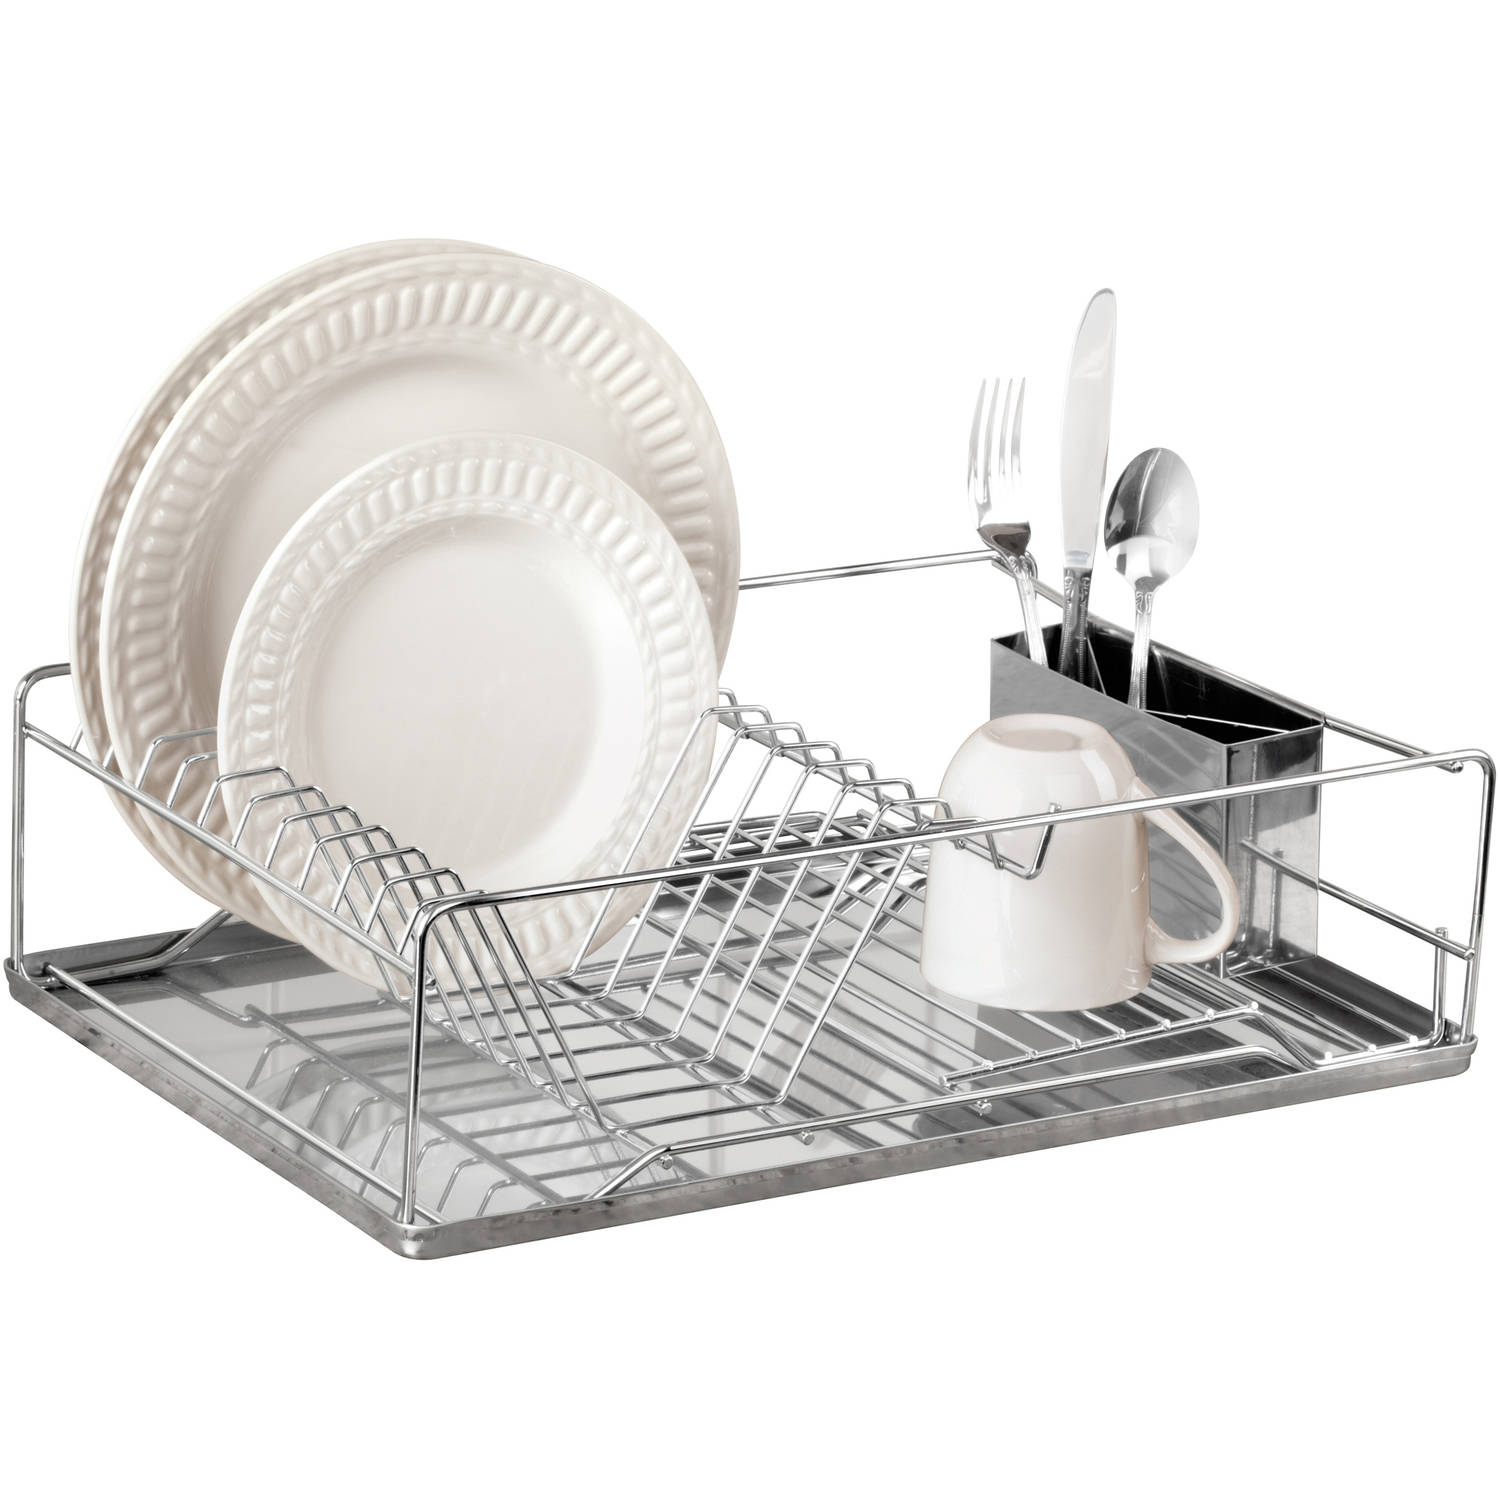 "Kitchen Details 3-Piece Stainless Steel 19"" Dish Rack by Kennedy International, INC."